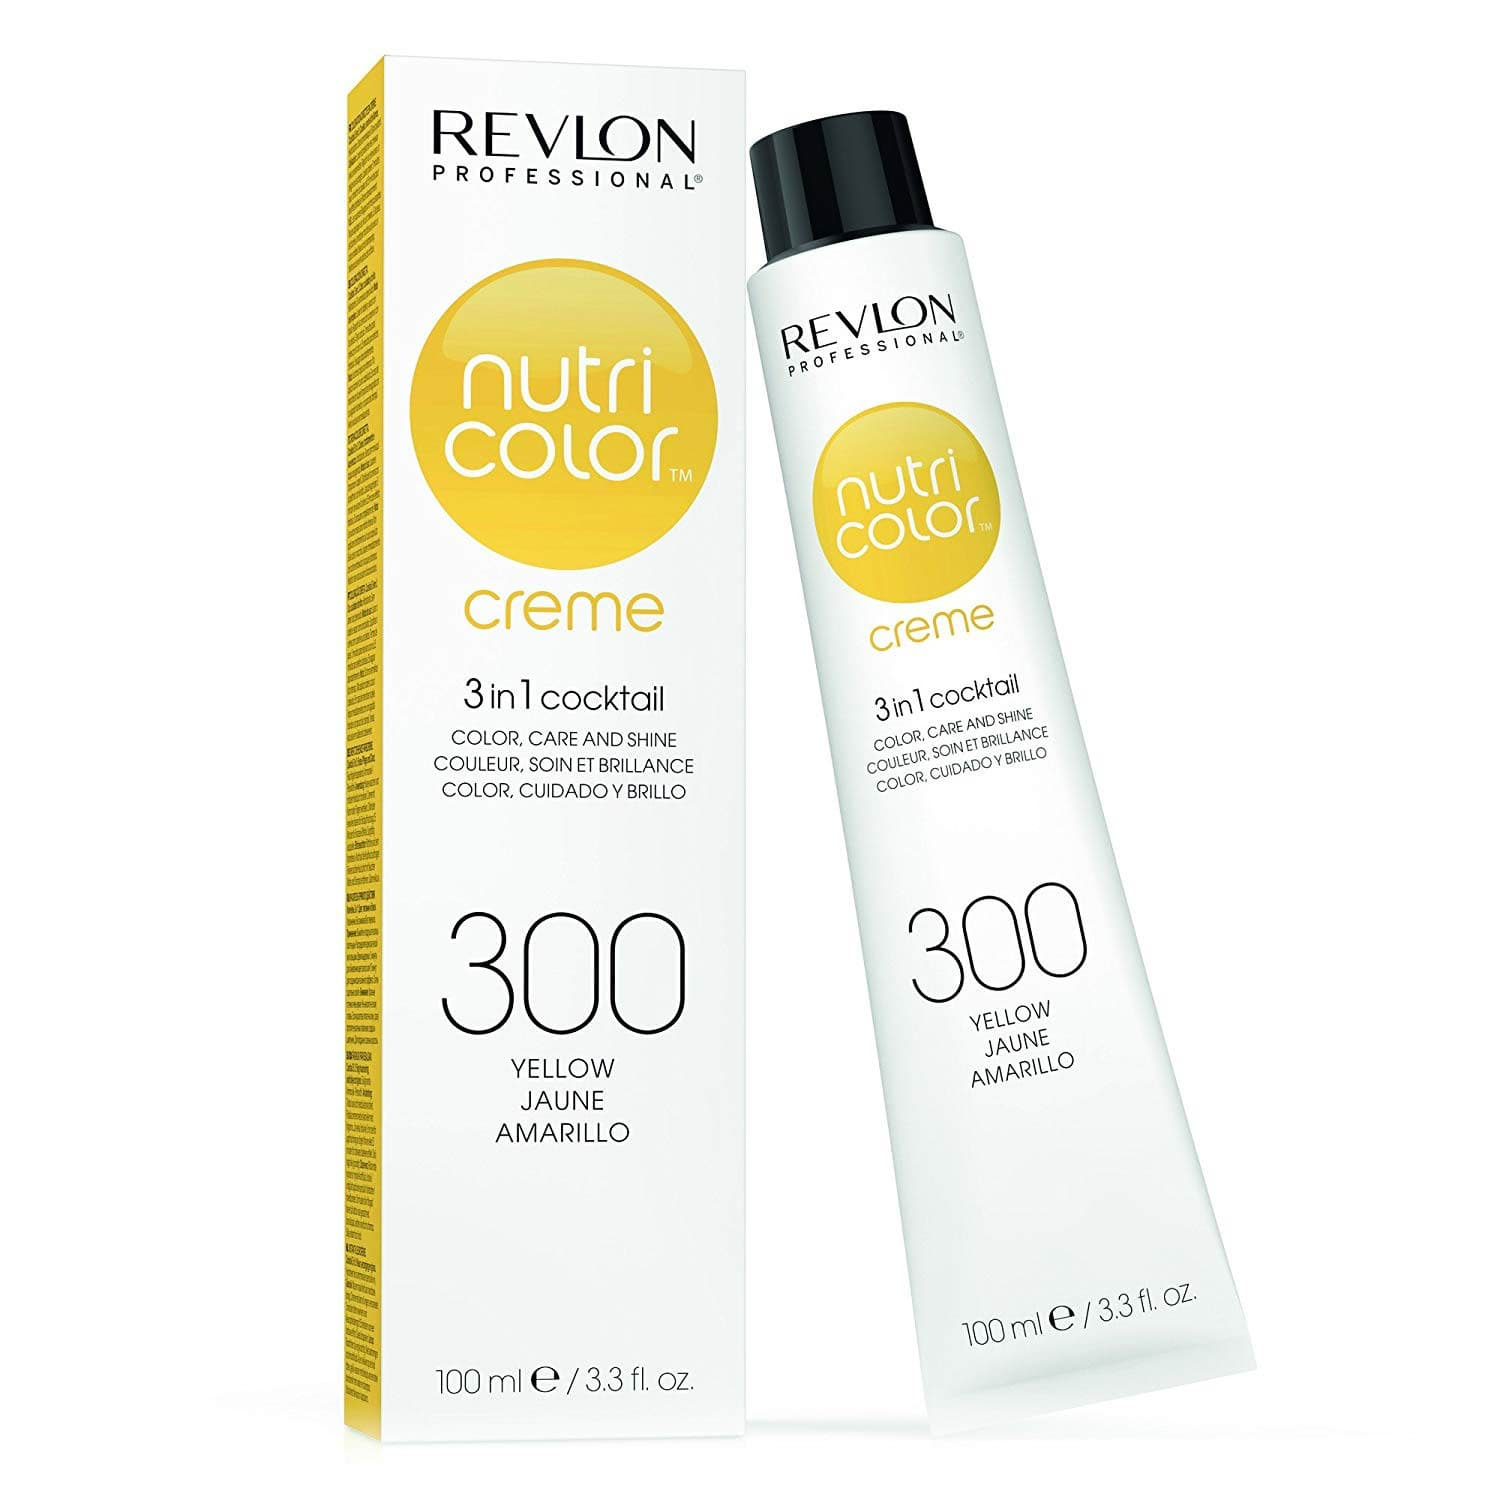 Revlon Professional Nutri Color Crème - 300 Yellow 100ml by Revlon Professional